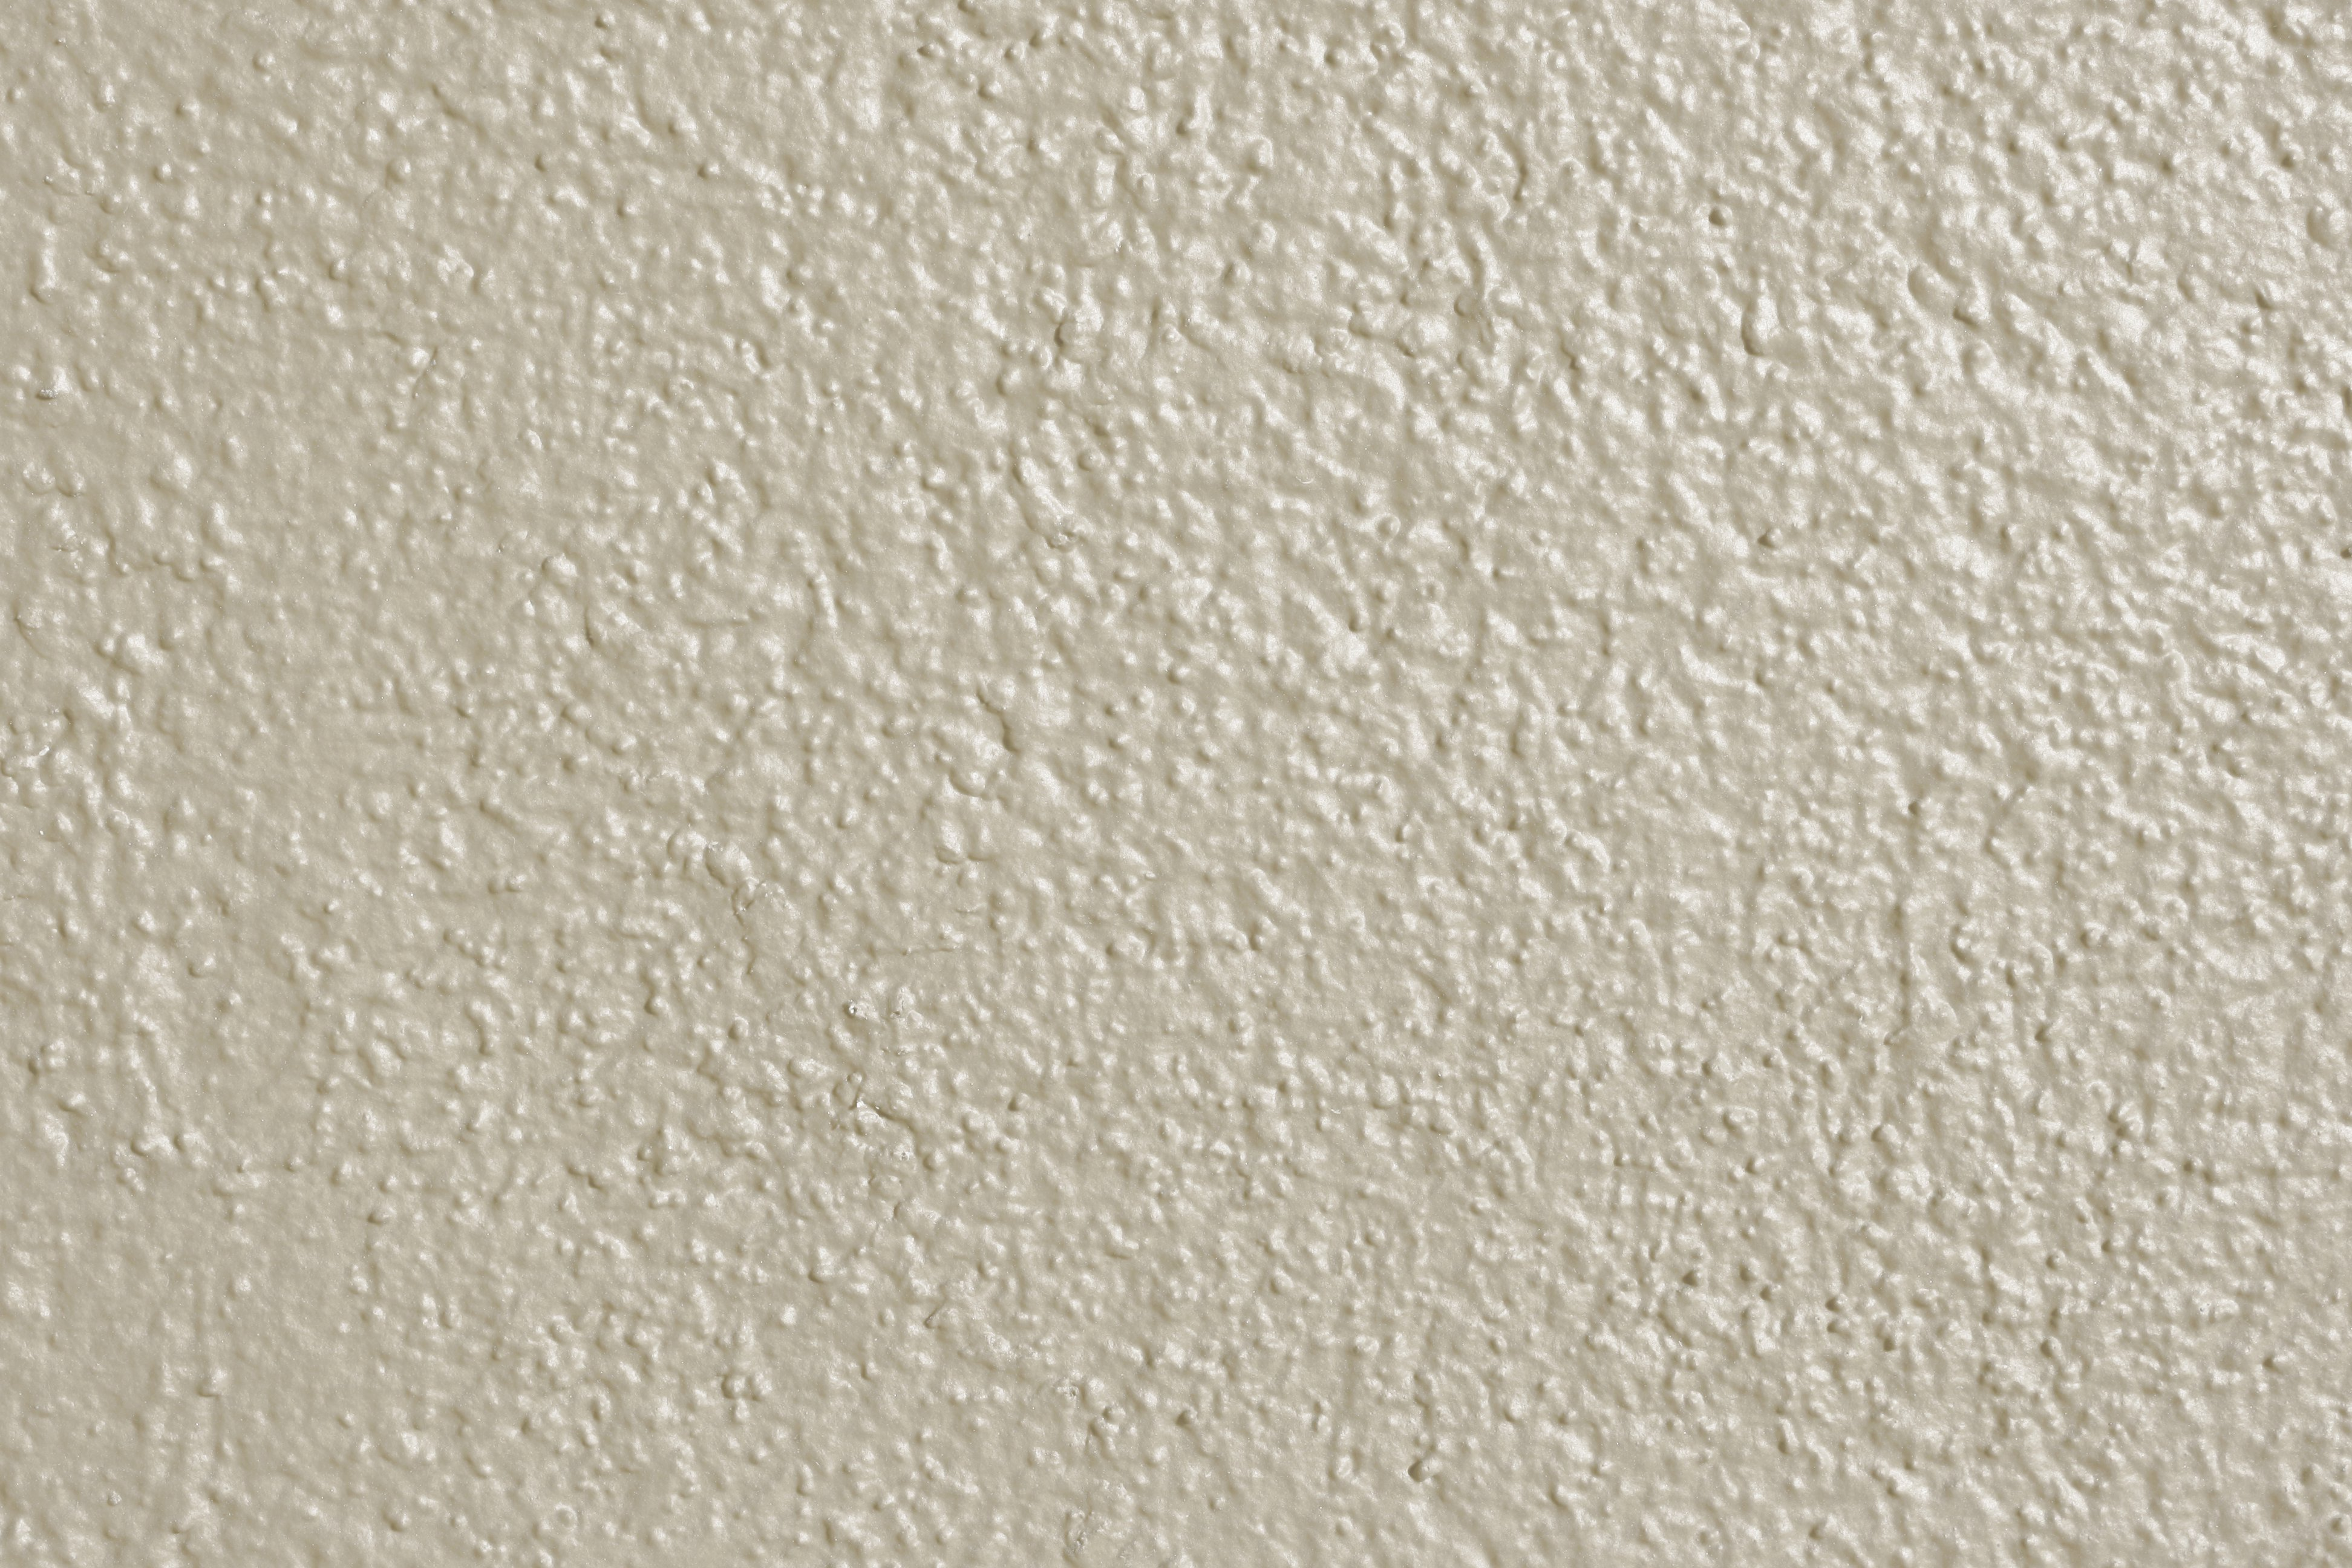 Ivory Off White Painted Wall Texture Picture | Free Photograph ...